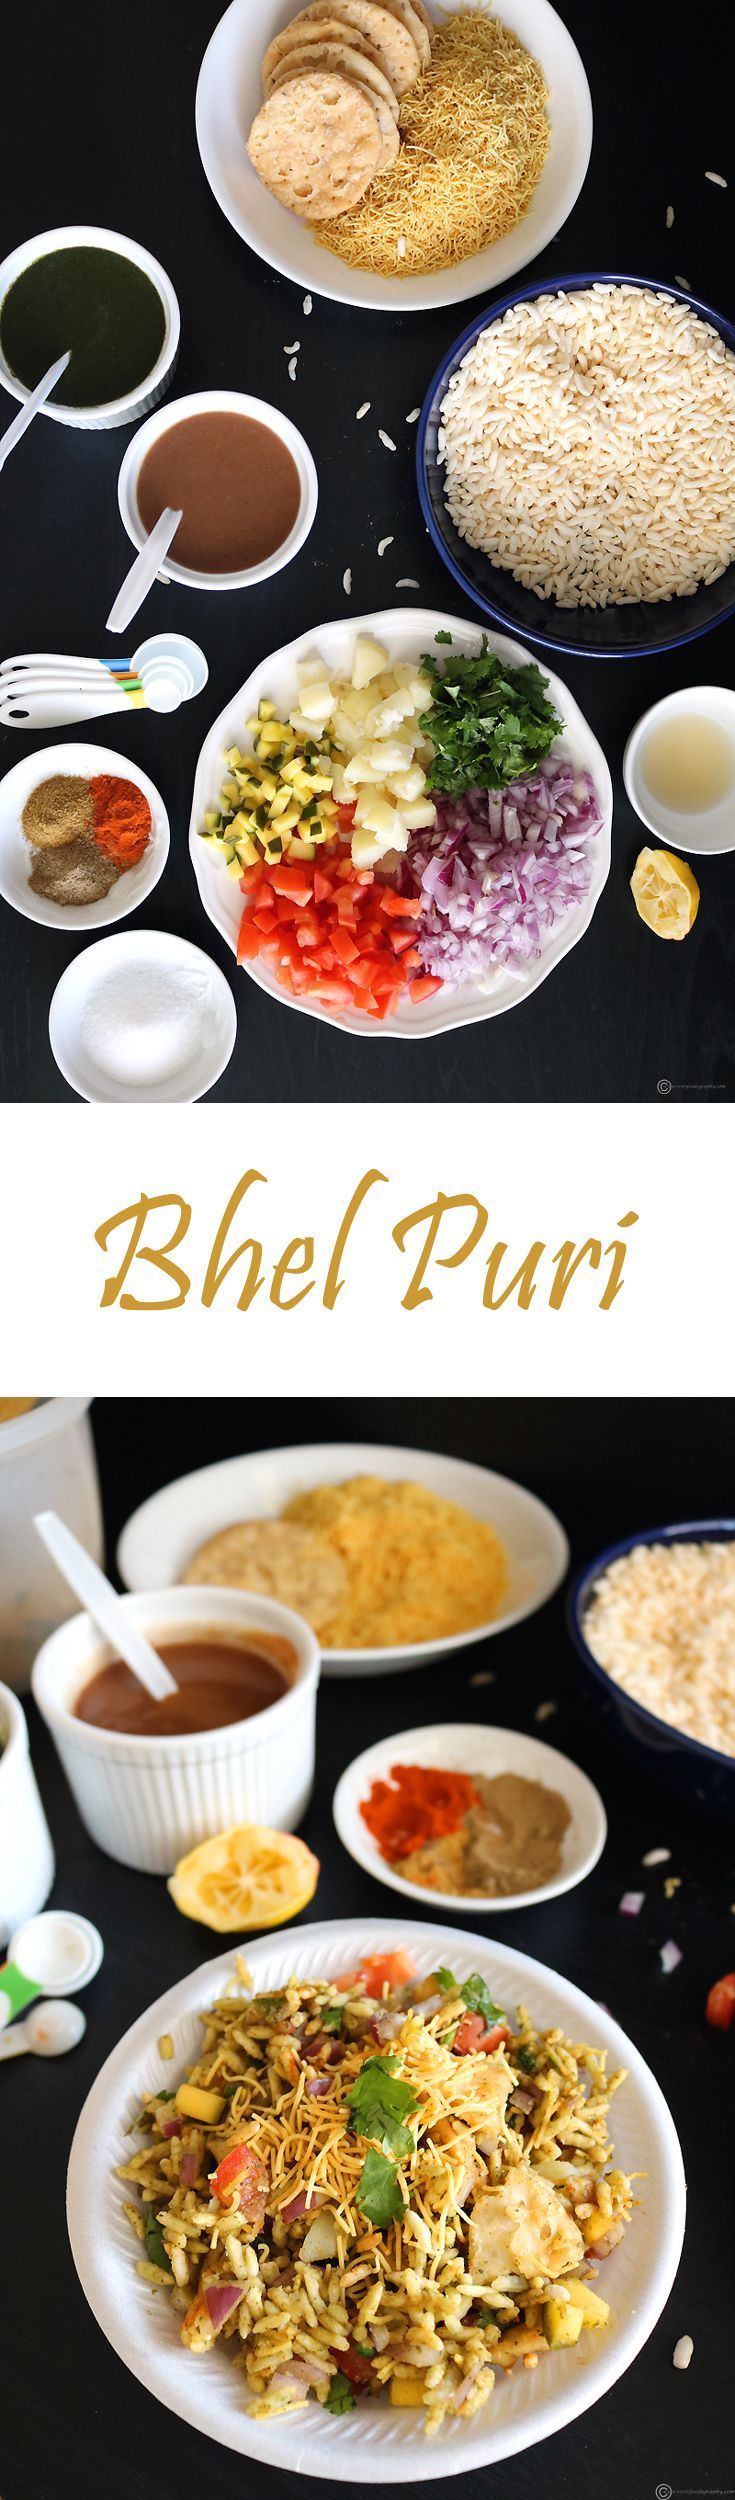 Bhel Puri is a delicious Indian snack, popularly categorized as Chaat (Street food).  It has puffed rice as the base and other condiments are added to give an array of flavors and texture. The perfect evening snack. Read More